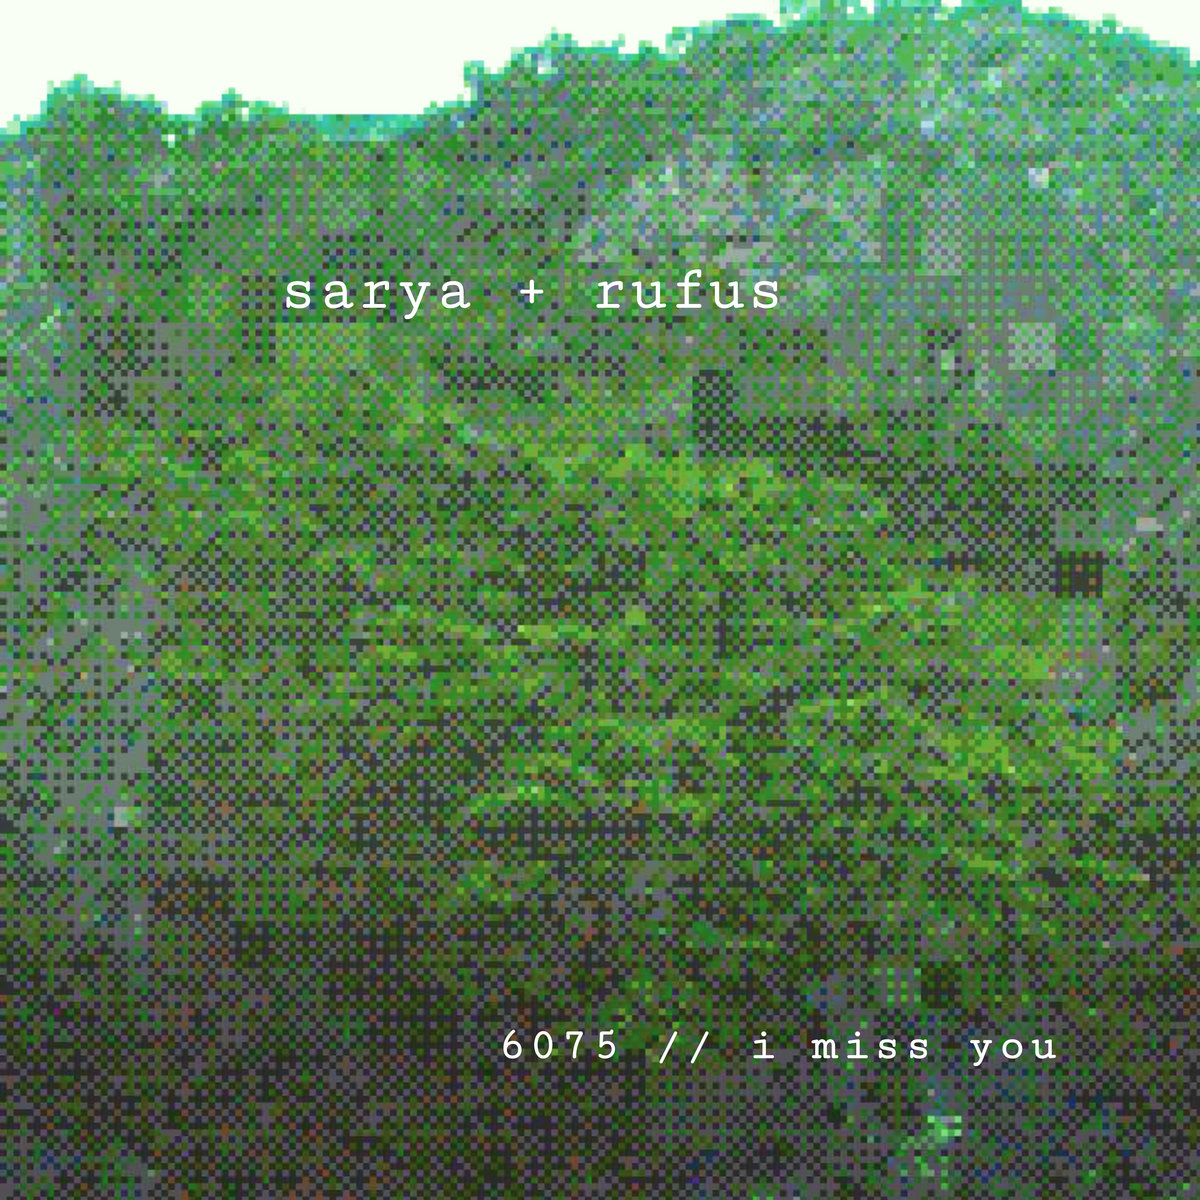 6075 // i miss you (feat. Rufus) by sarya + rufus